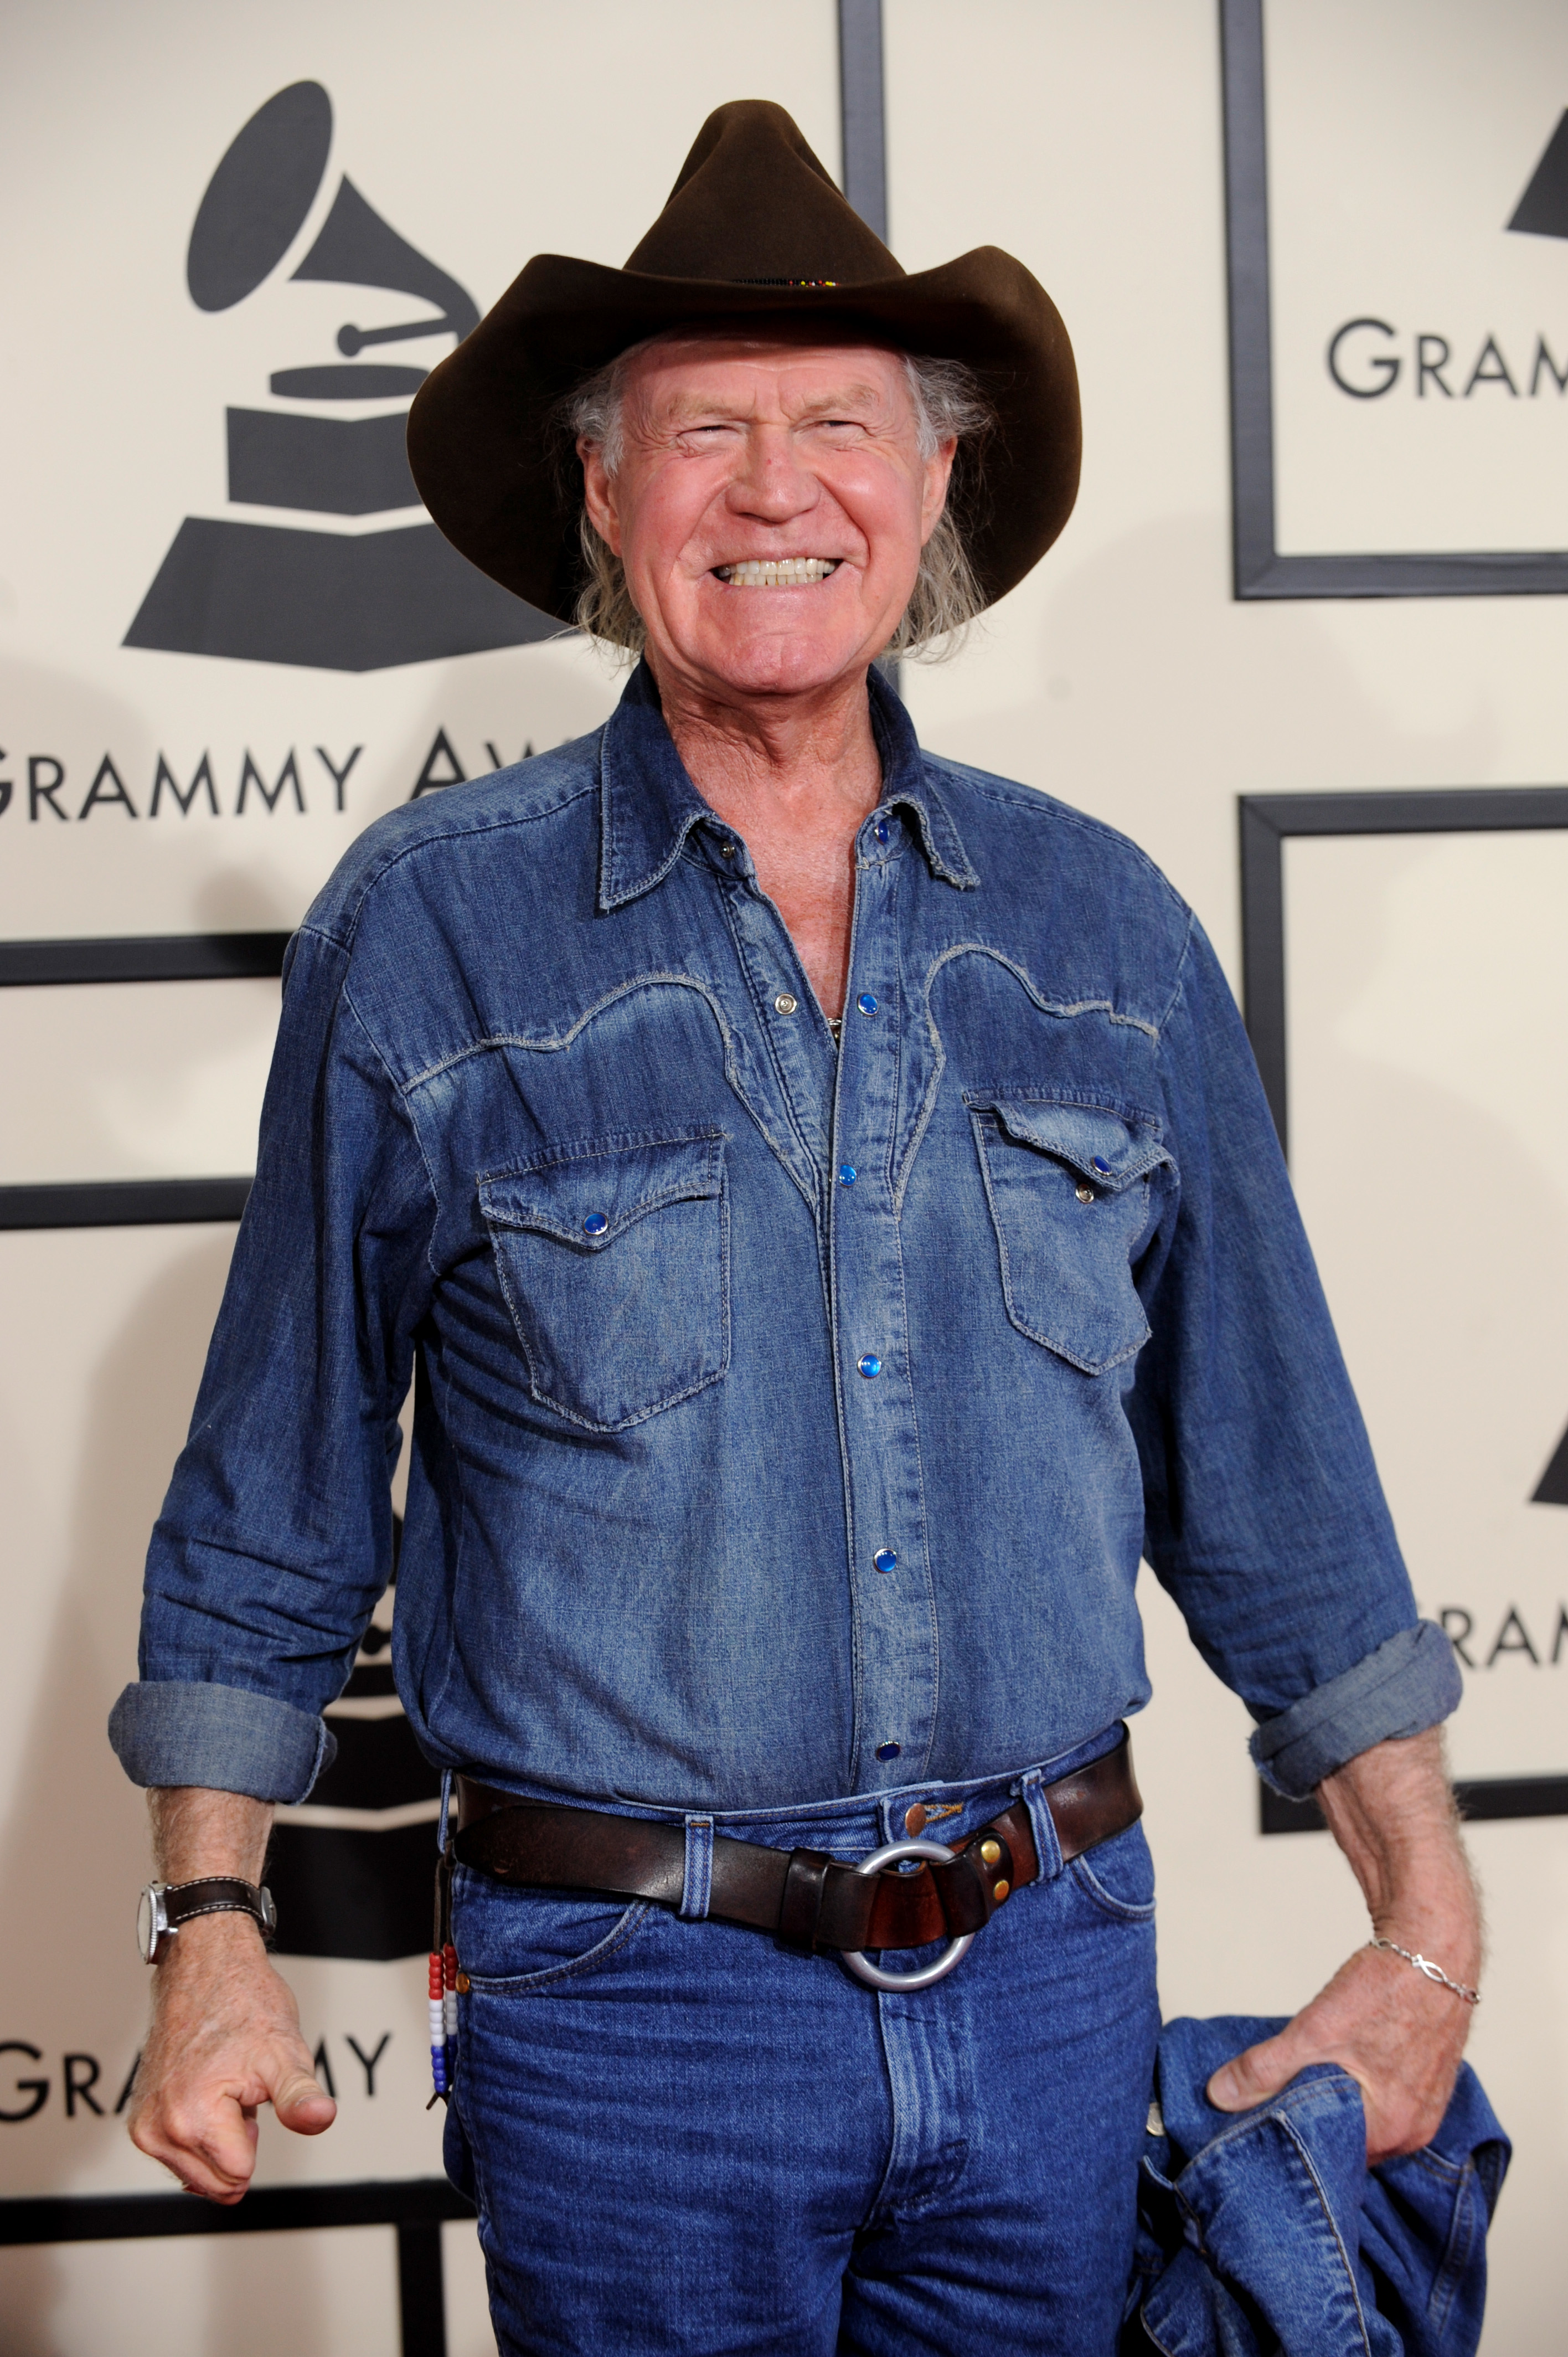 Billy Joe Shaver shot a man in the face